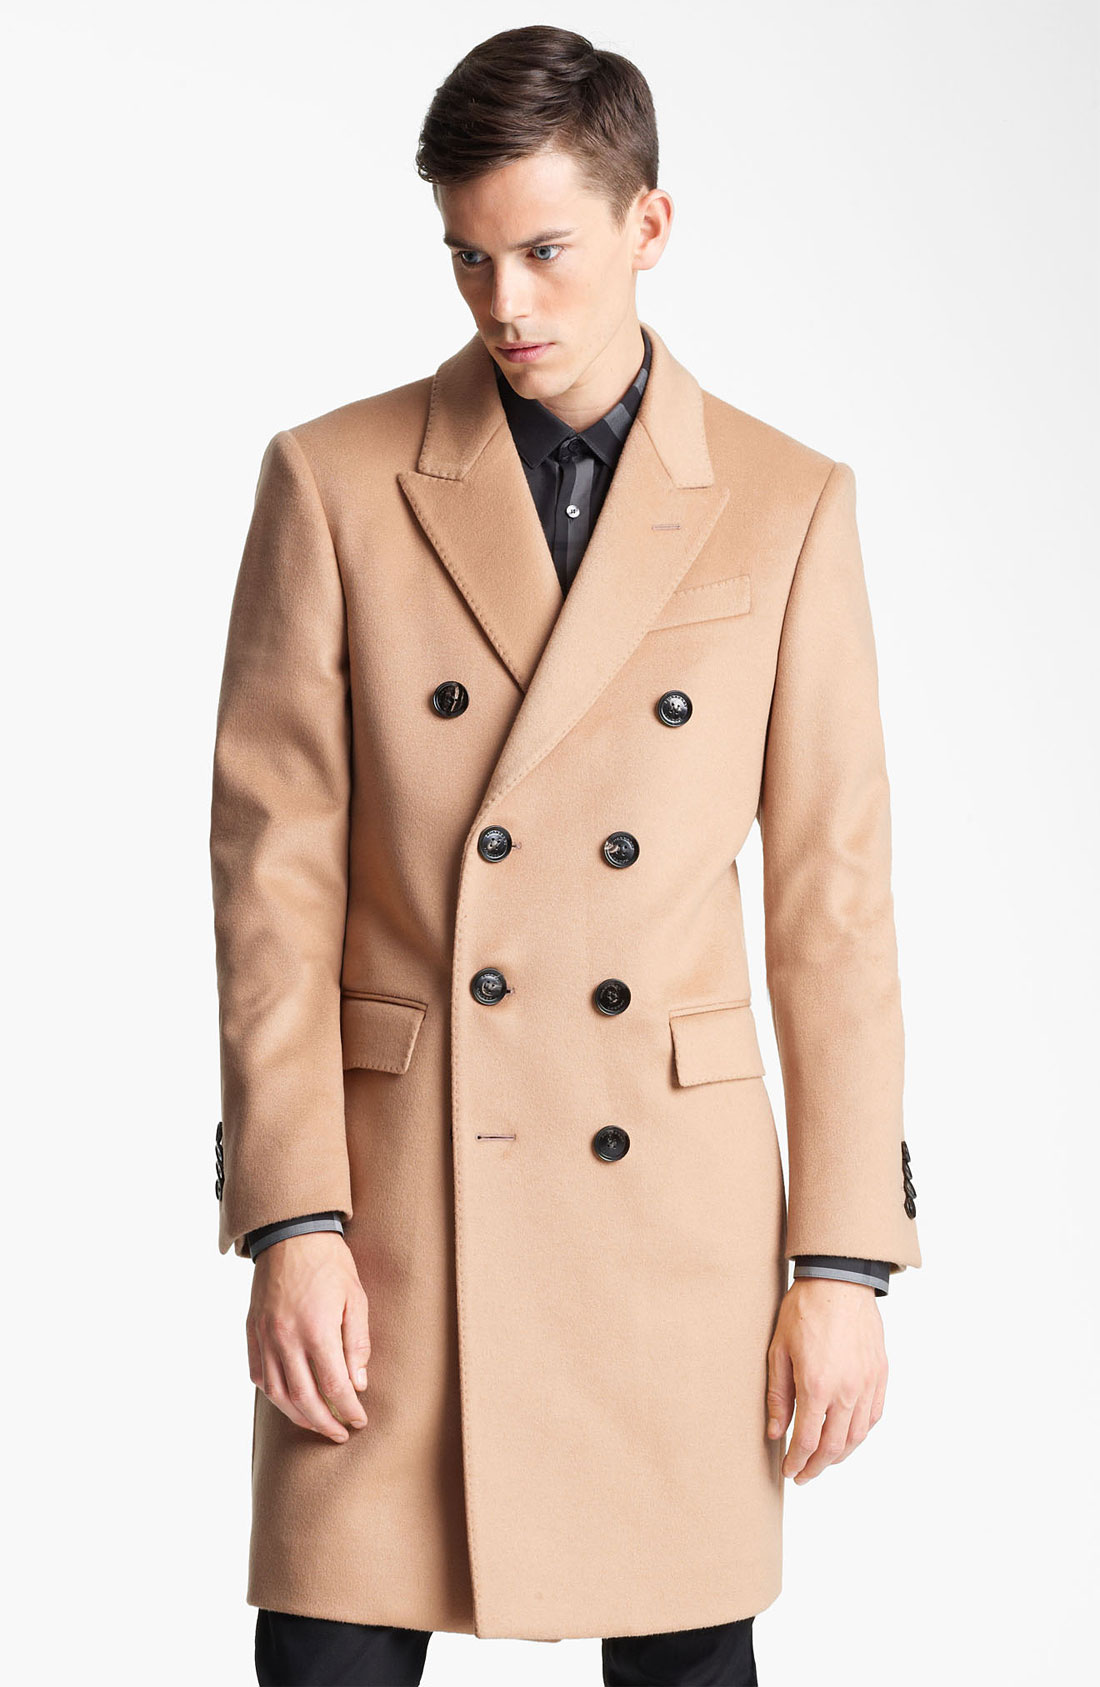 Get your Long, Mens Overcoat, Cashmere, Outwear, Mens Top Coats for Men, Camel, Cashmere Long Overcoats, Peacoat, Wool Topcoats, cozy and chic to the max. We have London fog overcoats nil nil 36 fans are sure to appreciate. We have mens camel top coats that are simultaneously understated and fashionable. We carry men's cashmere overcoat.